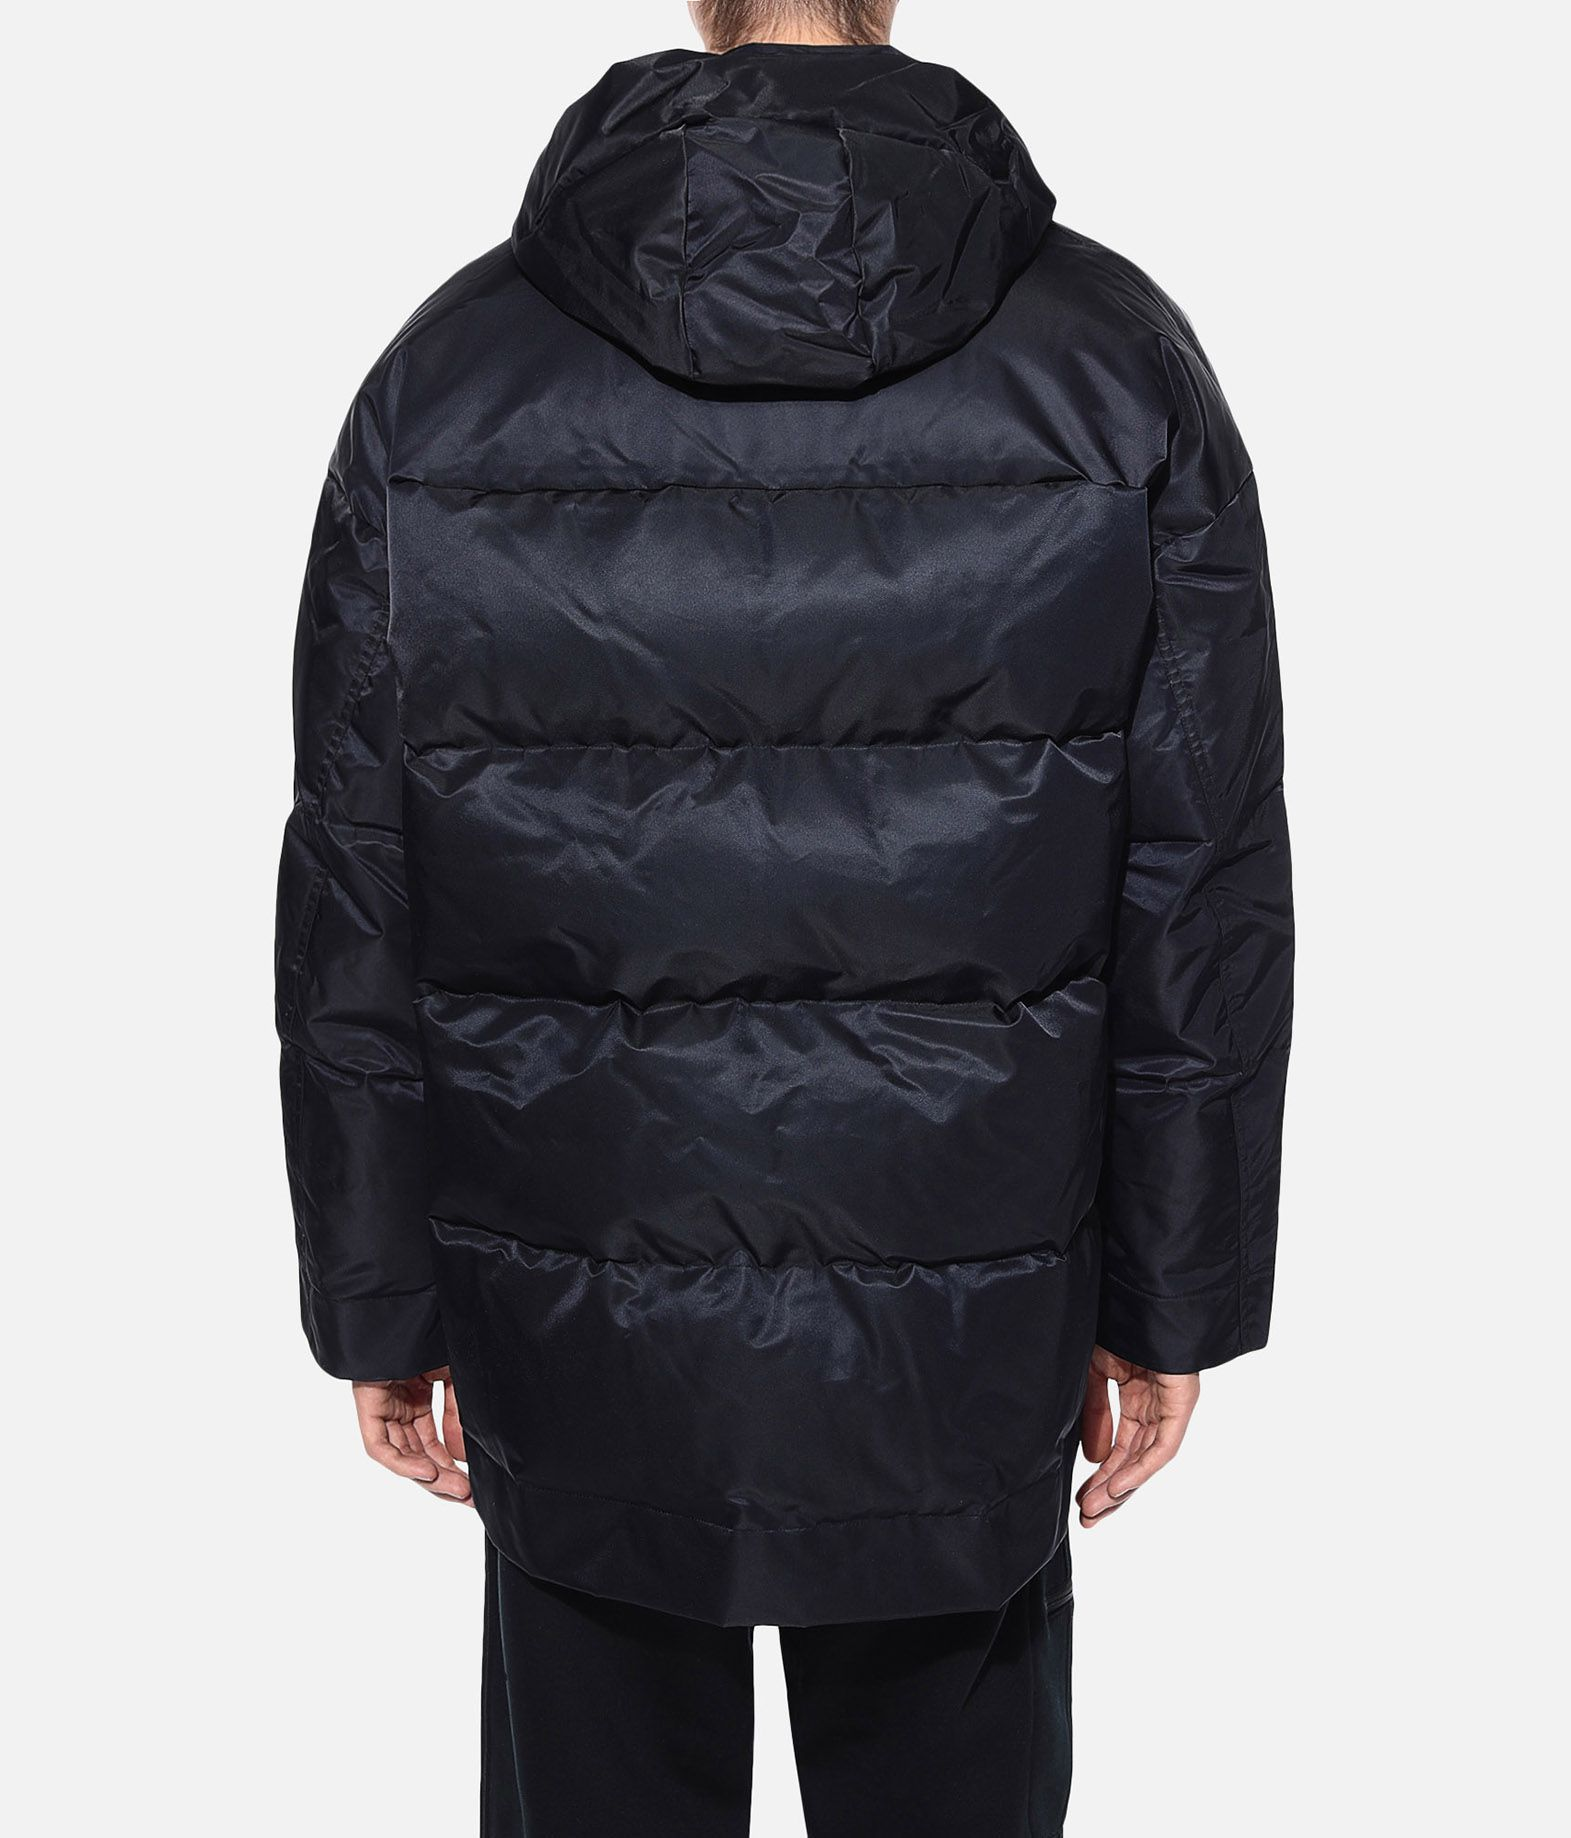 Y-3 Y-3 Engineered Down Jacket Steppjacke Herren d